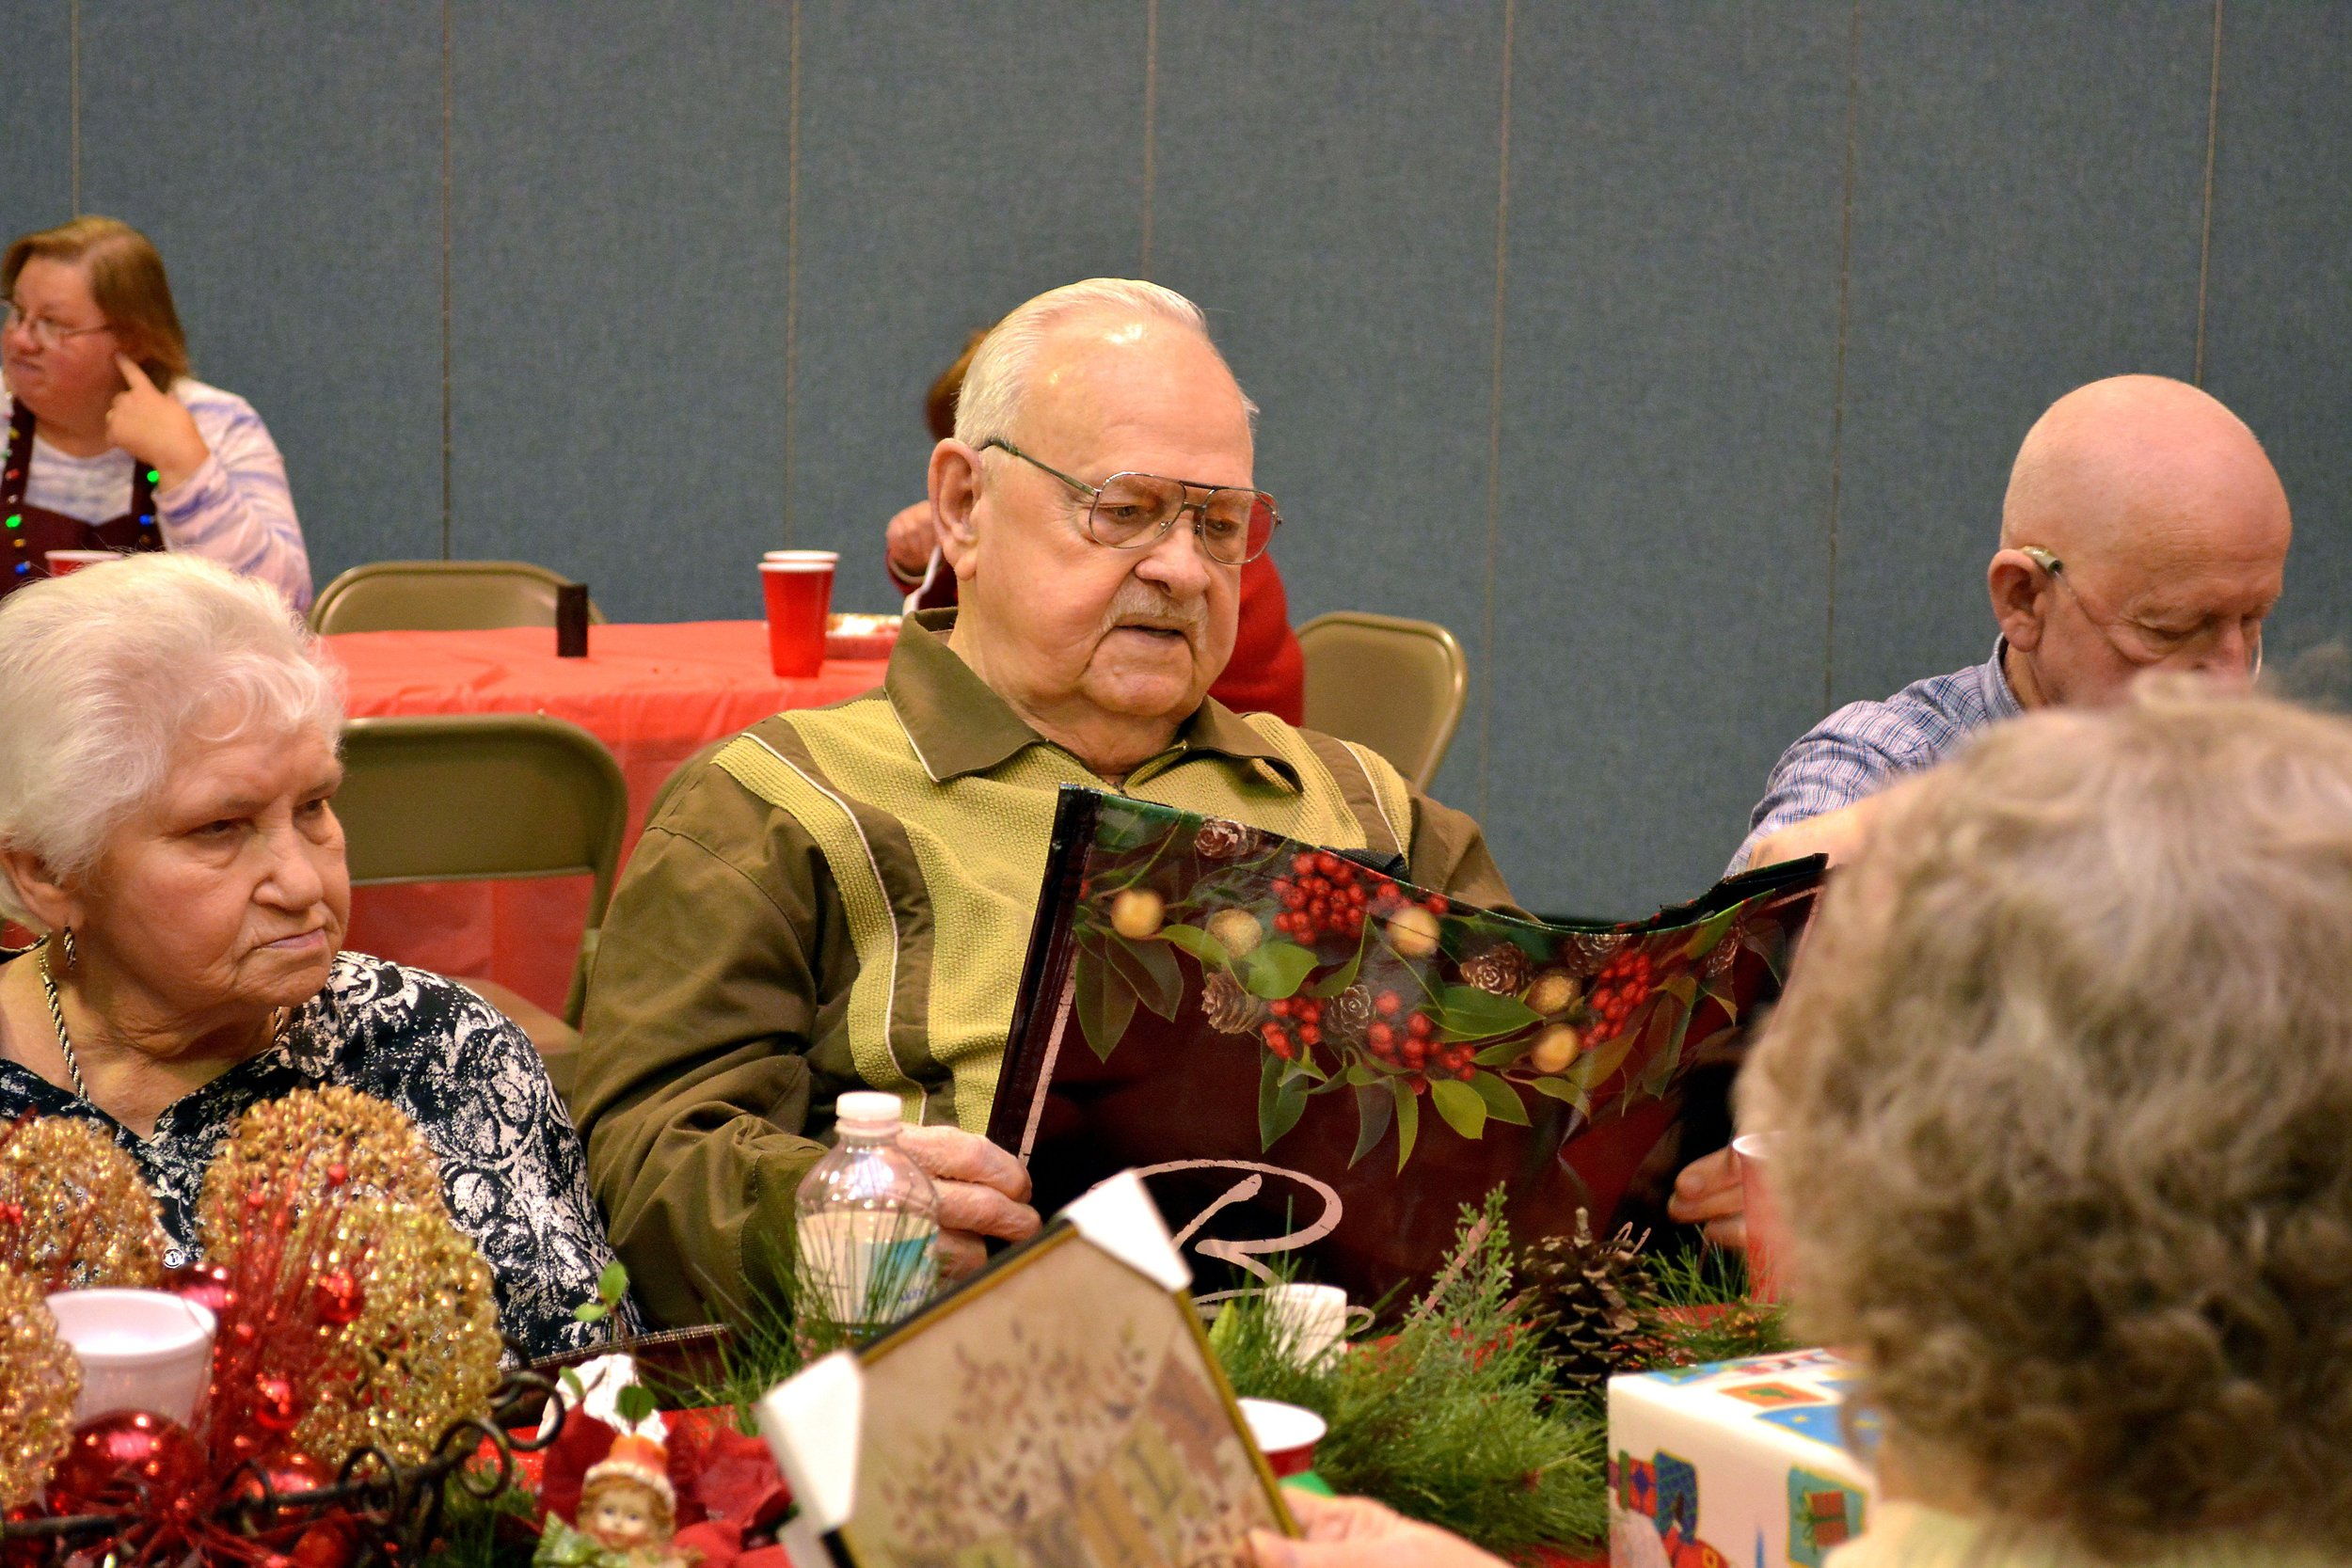 [tbclenoir.net]_af5f_senior saint, teen christmas, our christmas 2015 009.jpeg